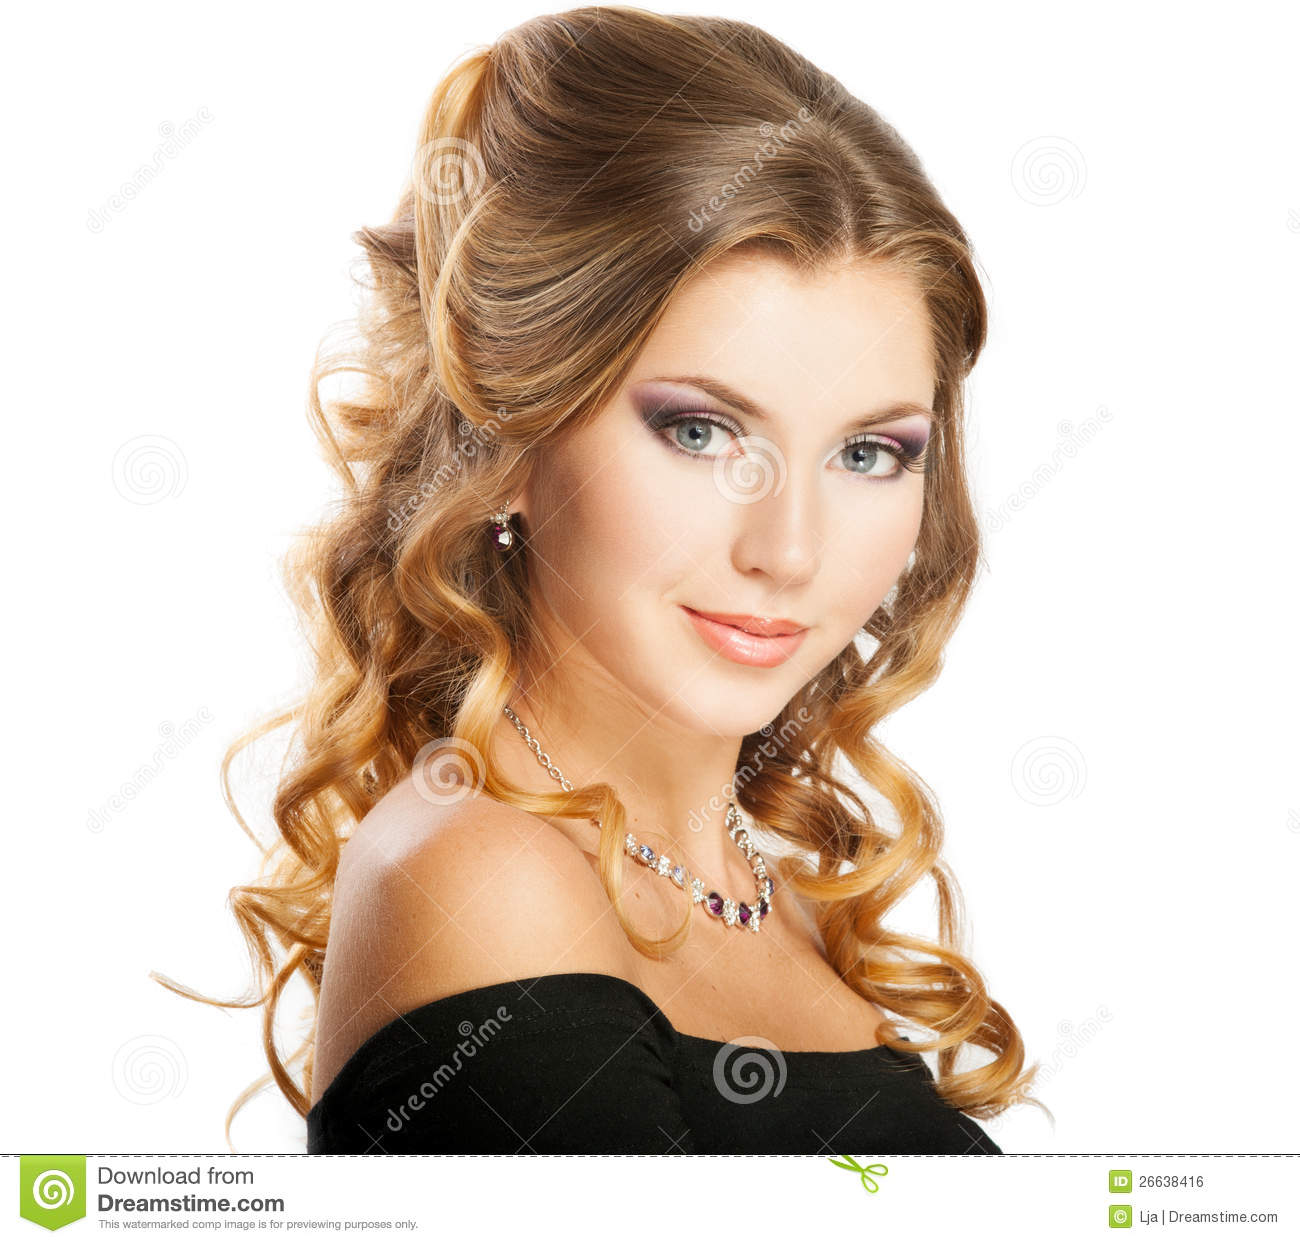 Beauty Grooming Style: Beauty Hairstyle Stock Photo. Image Of Hairdo, Looking